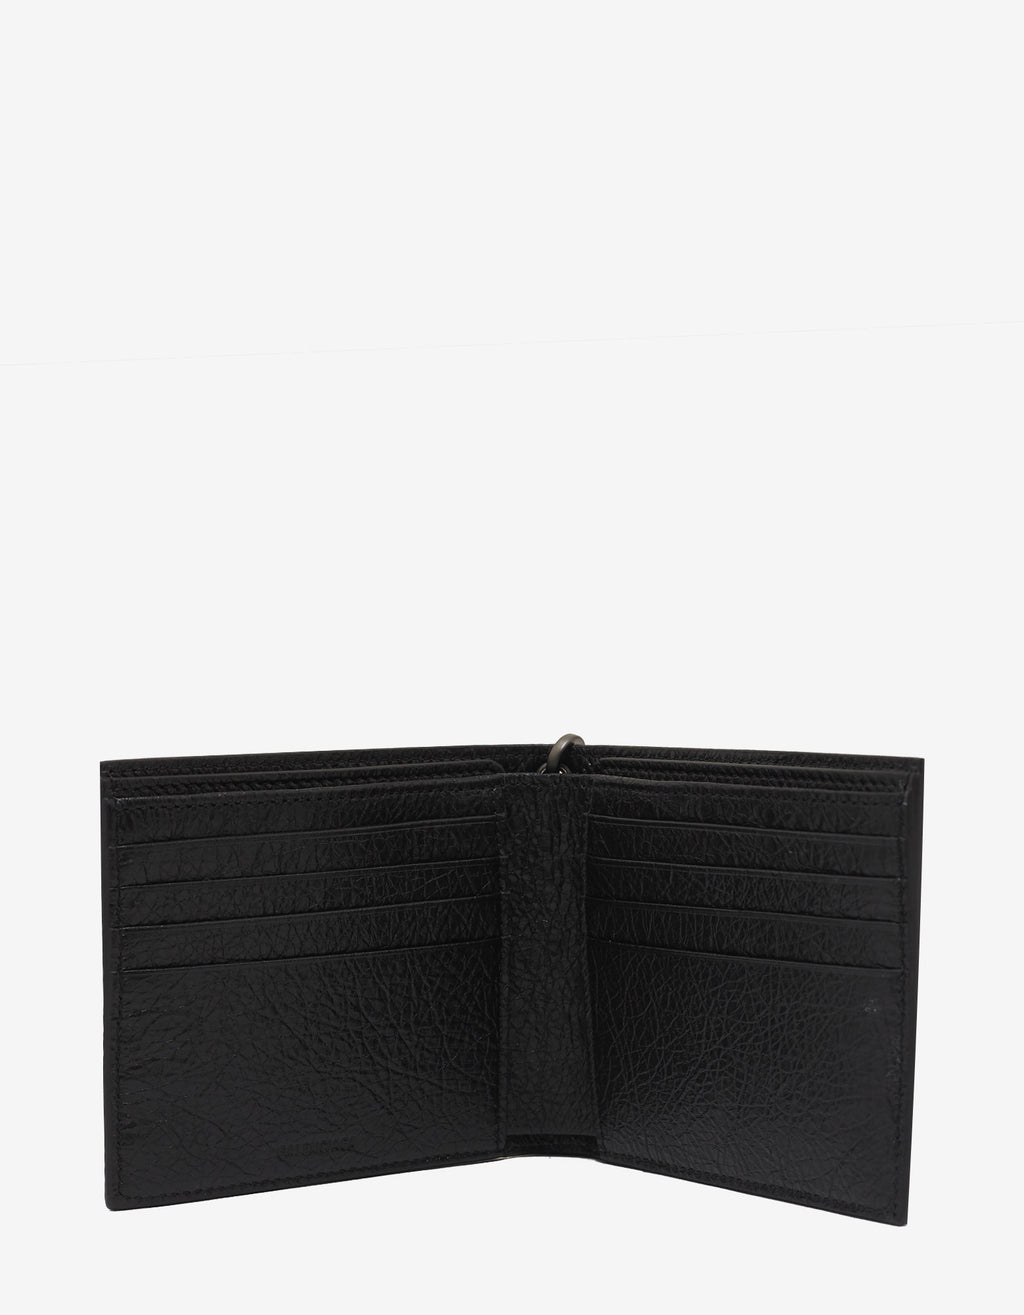 Black Graffiti Chain Leather Billfold Wallet